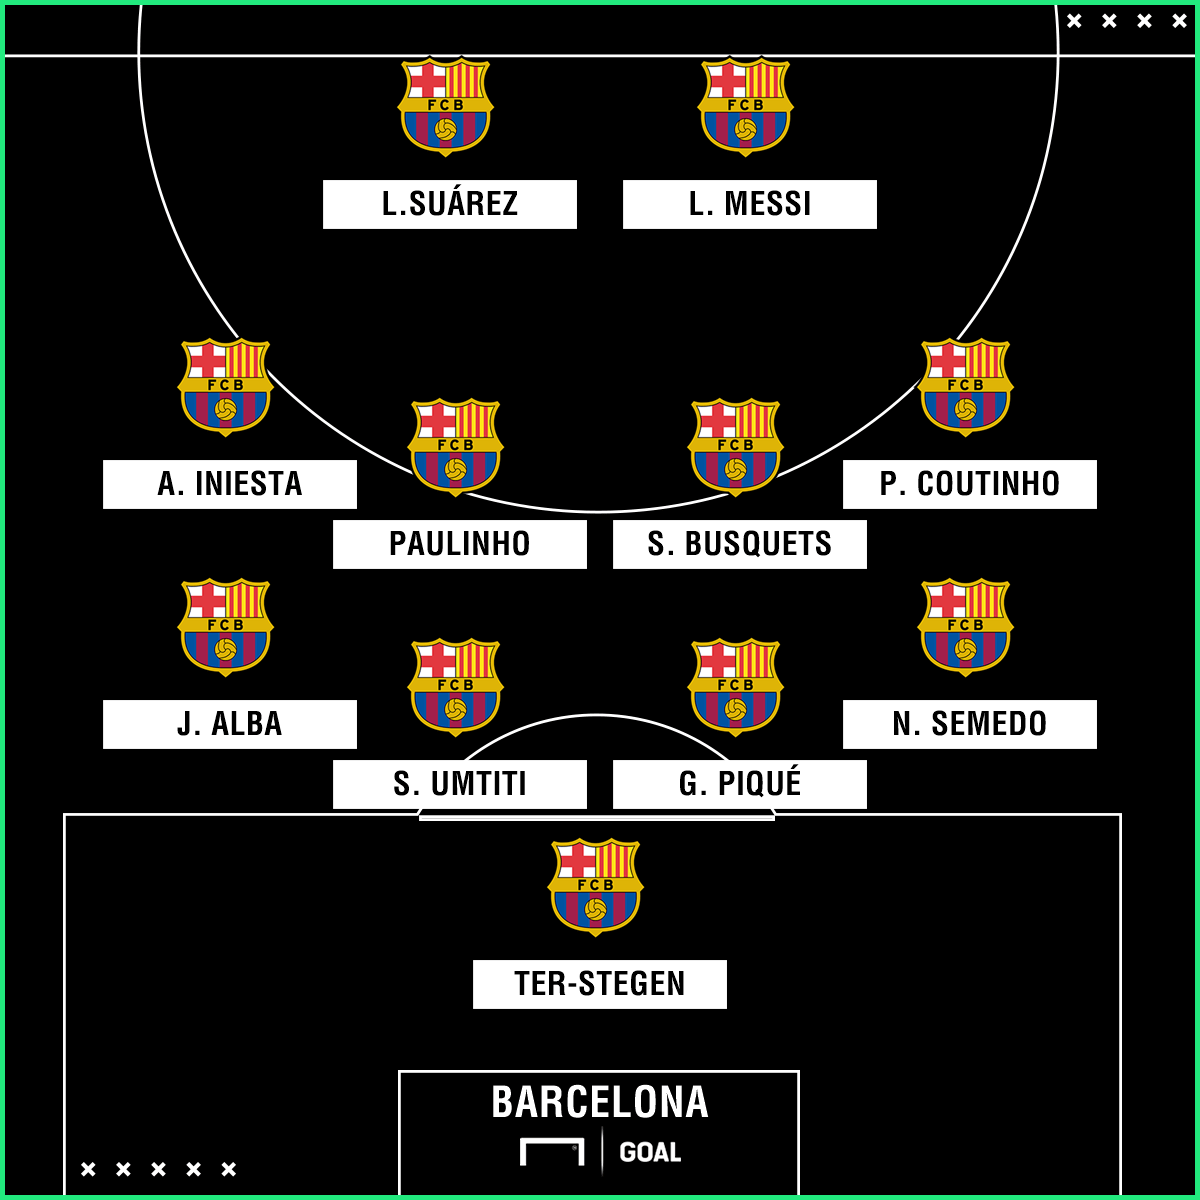 Barcelona Vs Girona Sofascore.com Barcelona Team News Injuries Suspensions And Line Up Vs